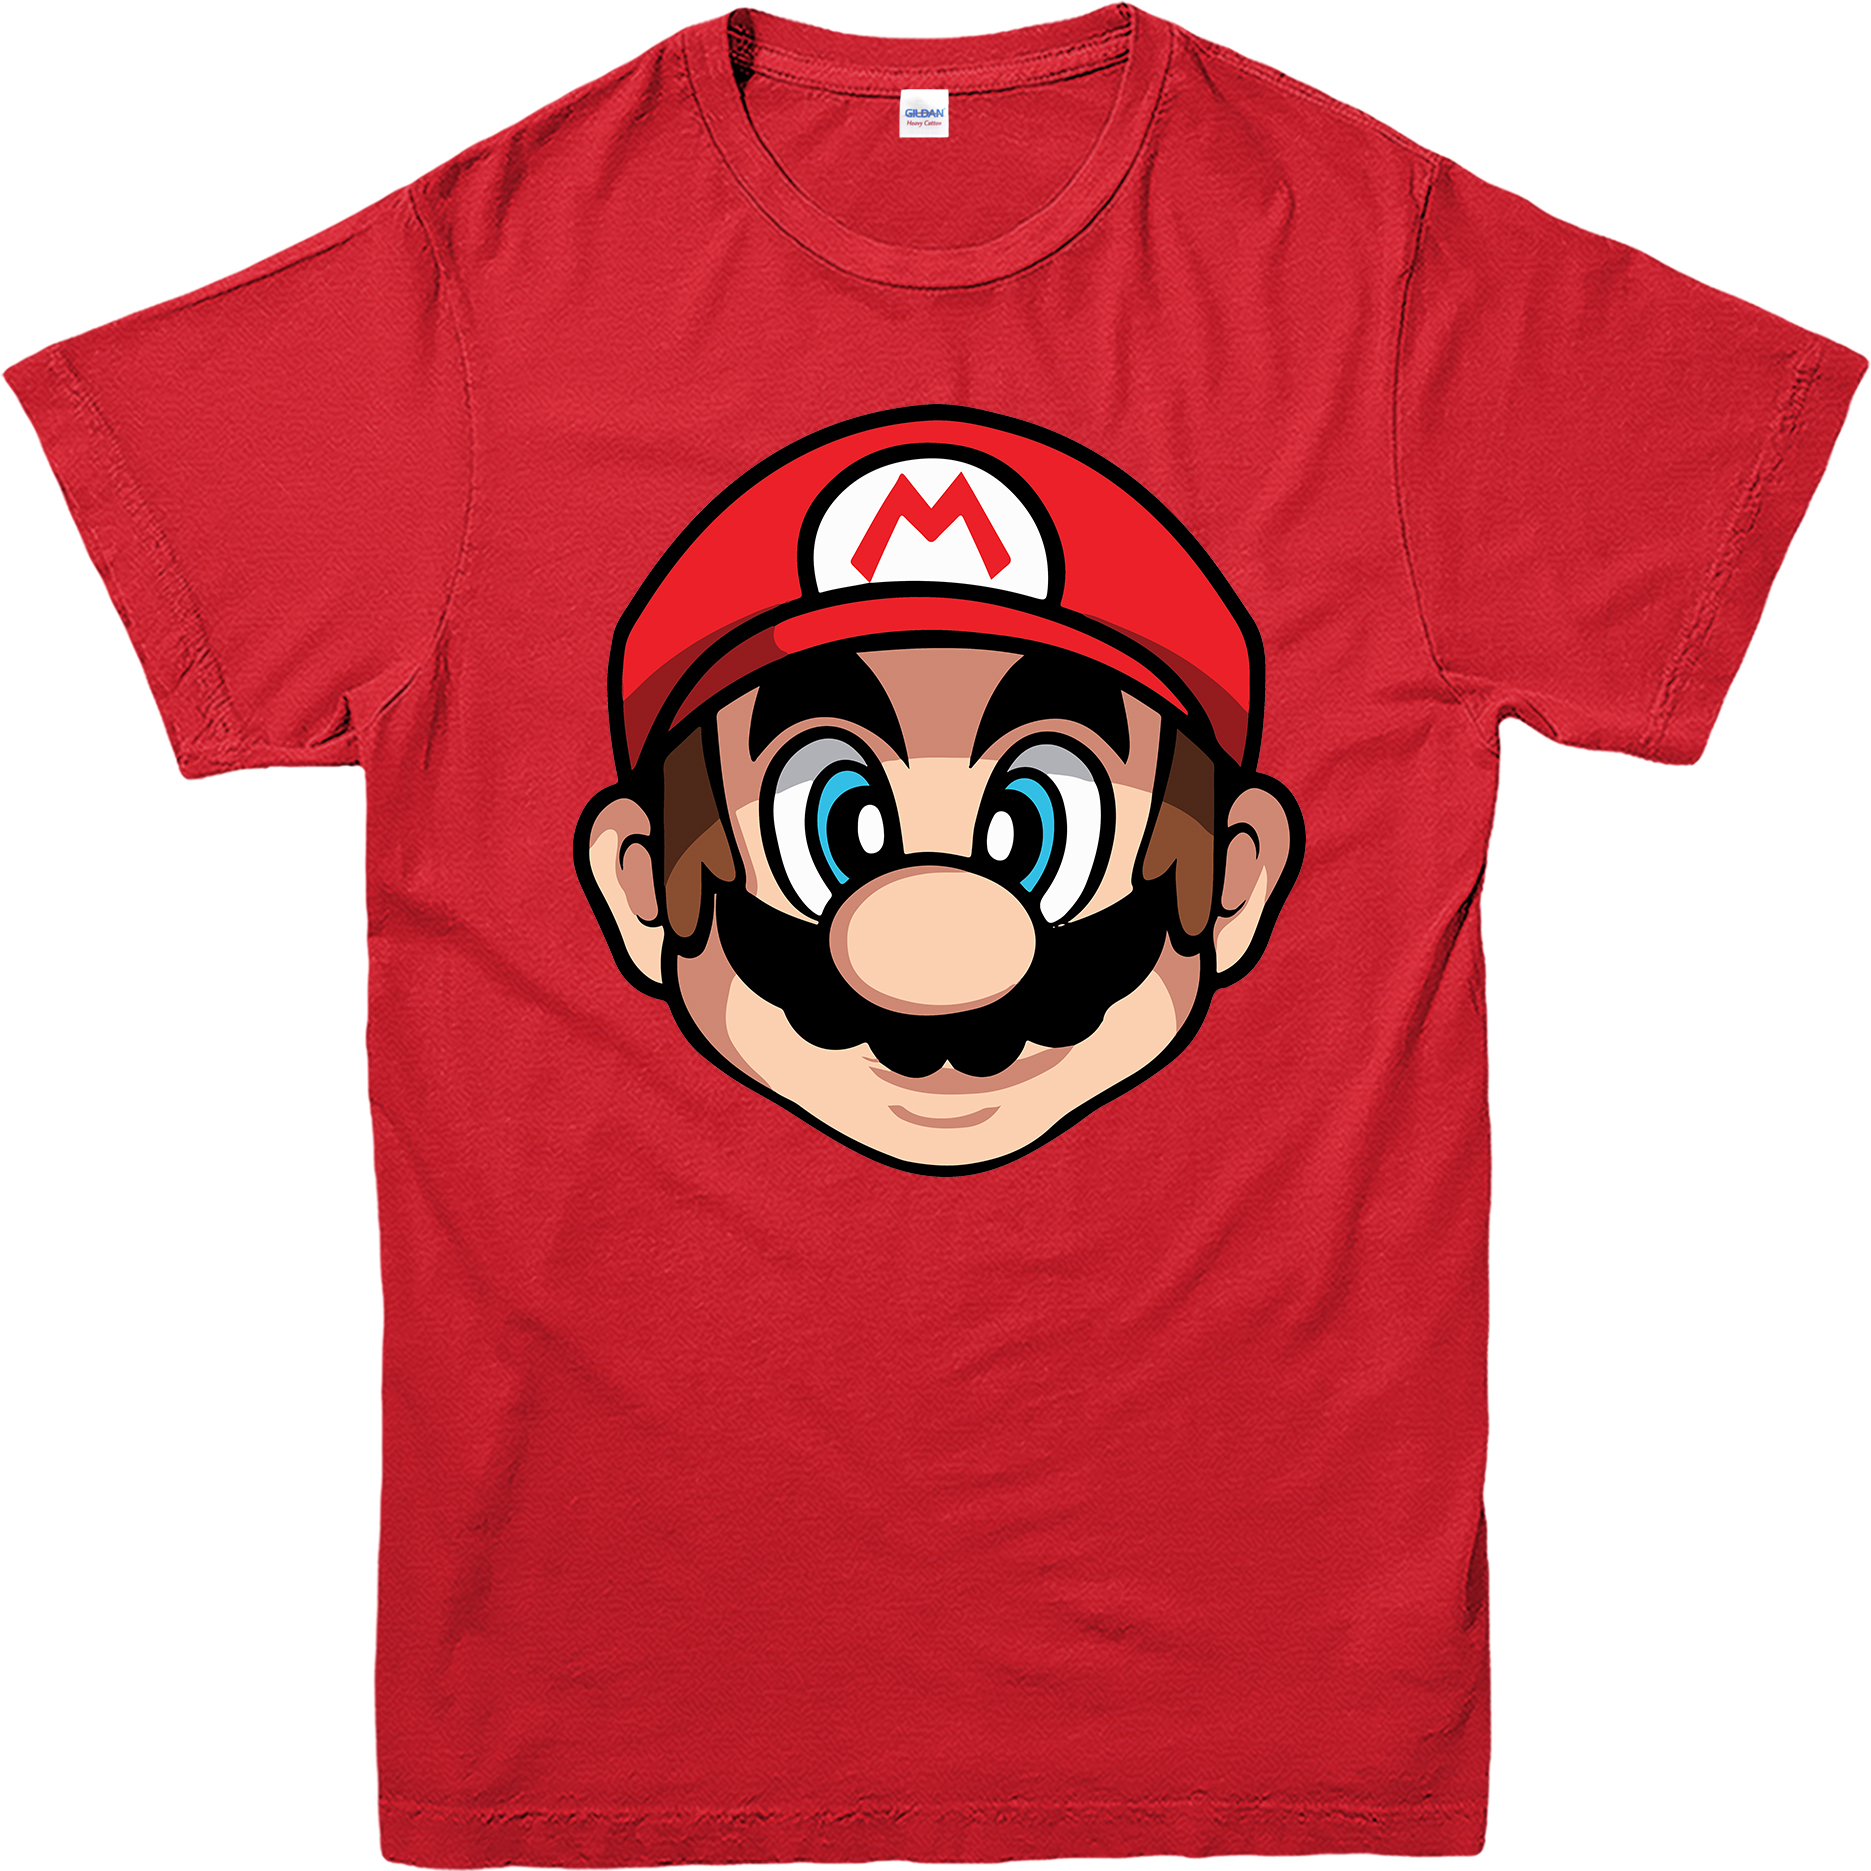 Supermario t shirt super mario face spoof t shirt gaming for Where can i sell t shirts